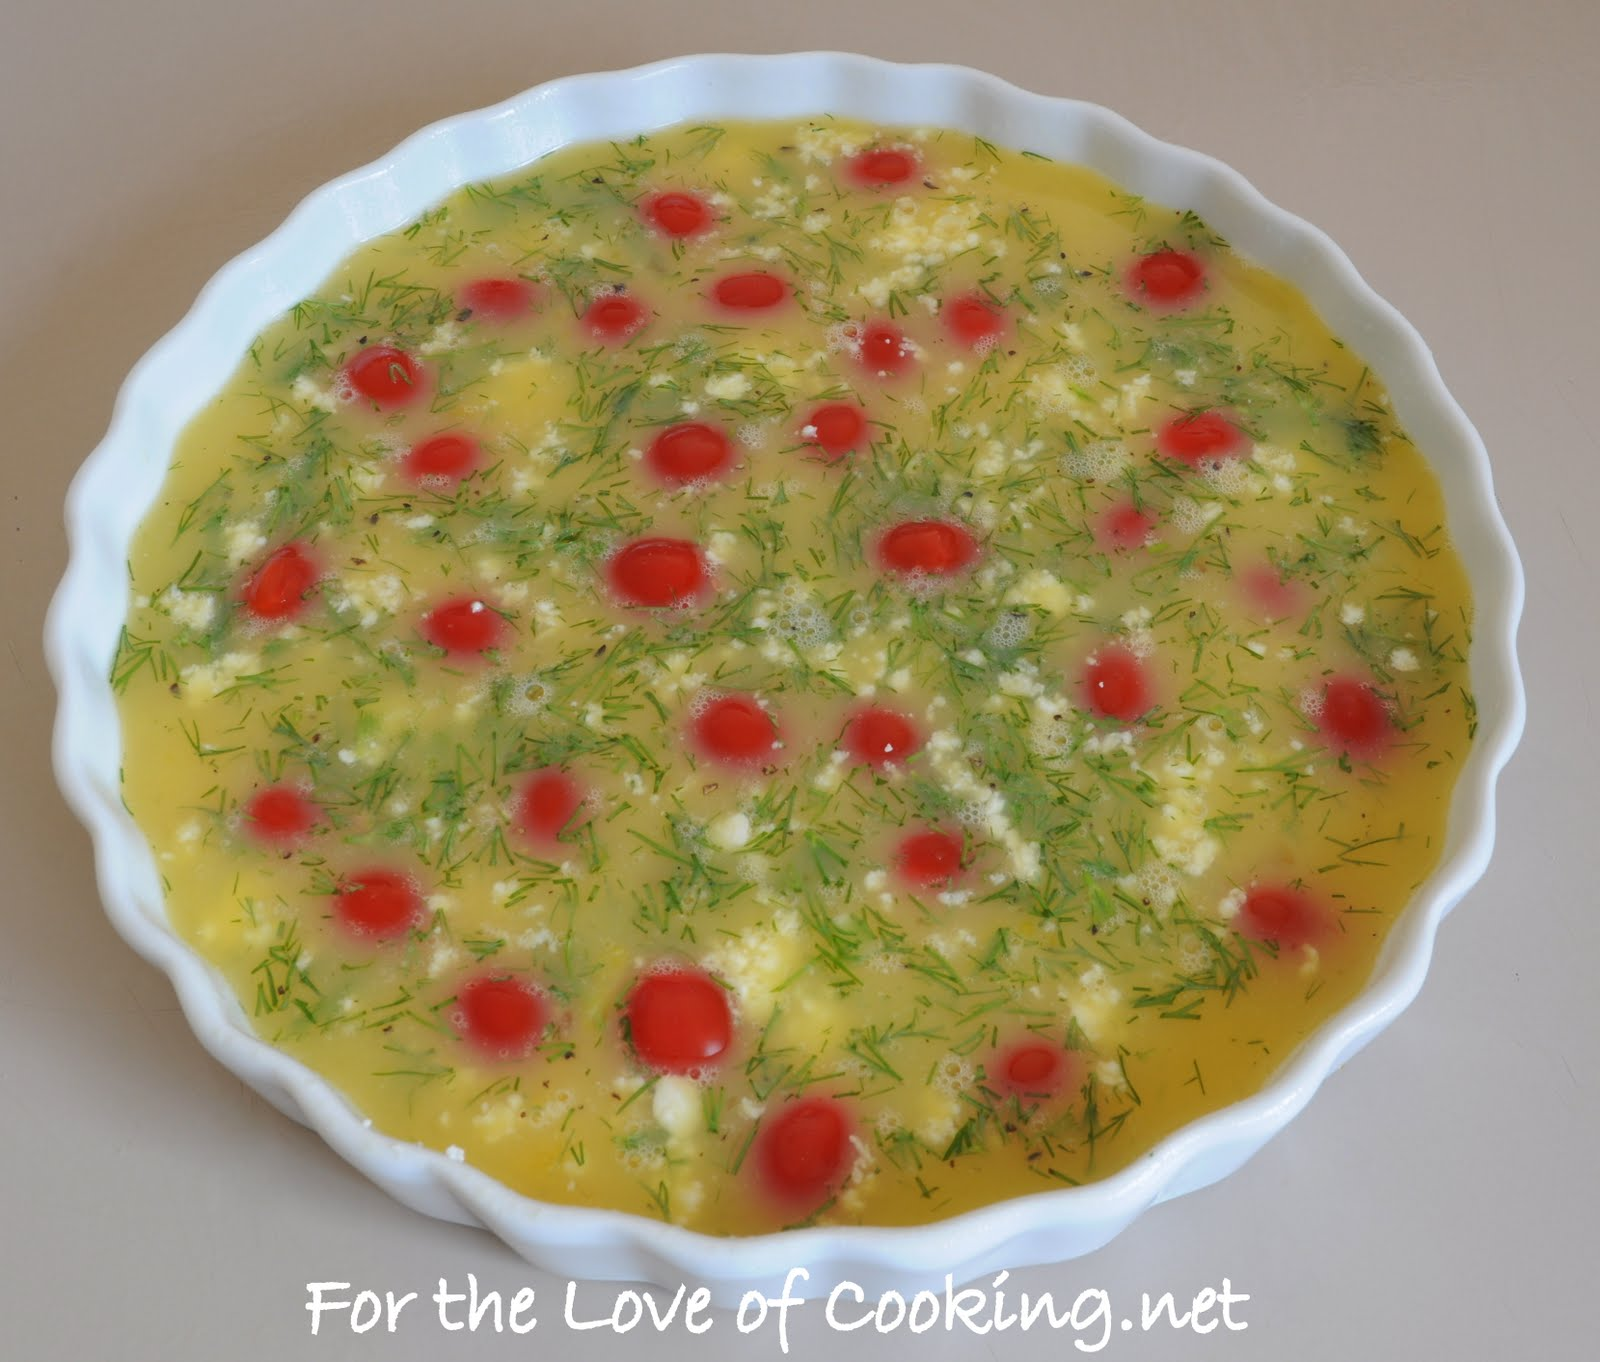 Place into the oven and bake at 350 degrees for 20 minutes, or until a ...